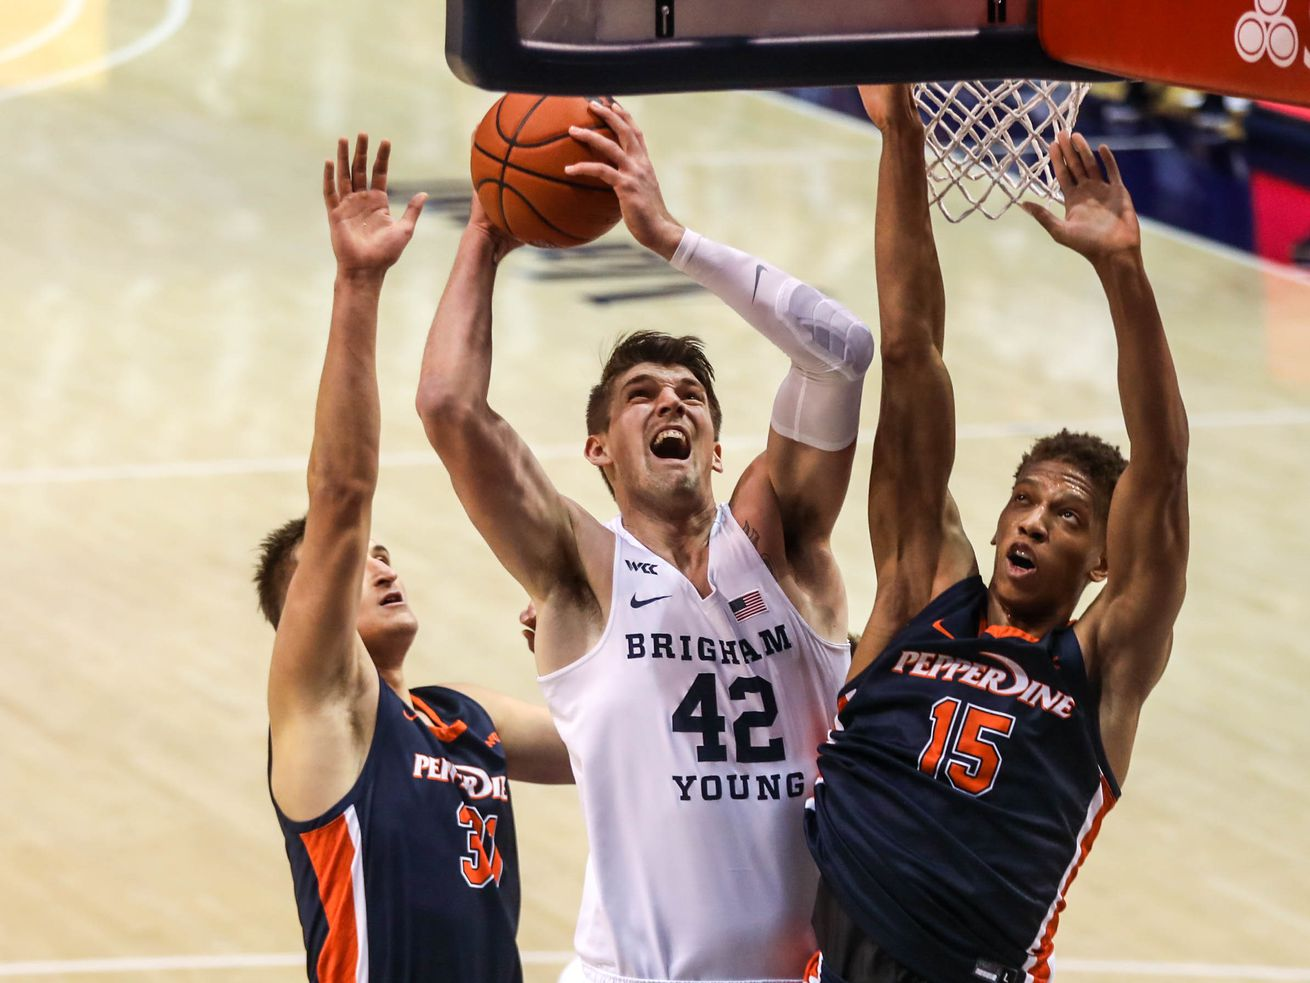 WCC semifinals set — which team will BYU face Monday night?